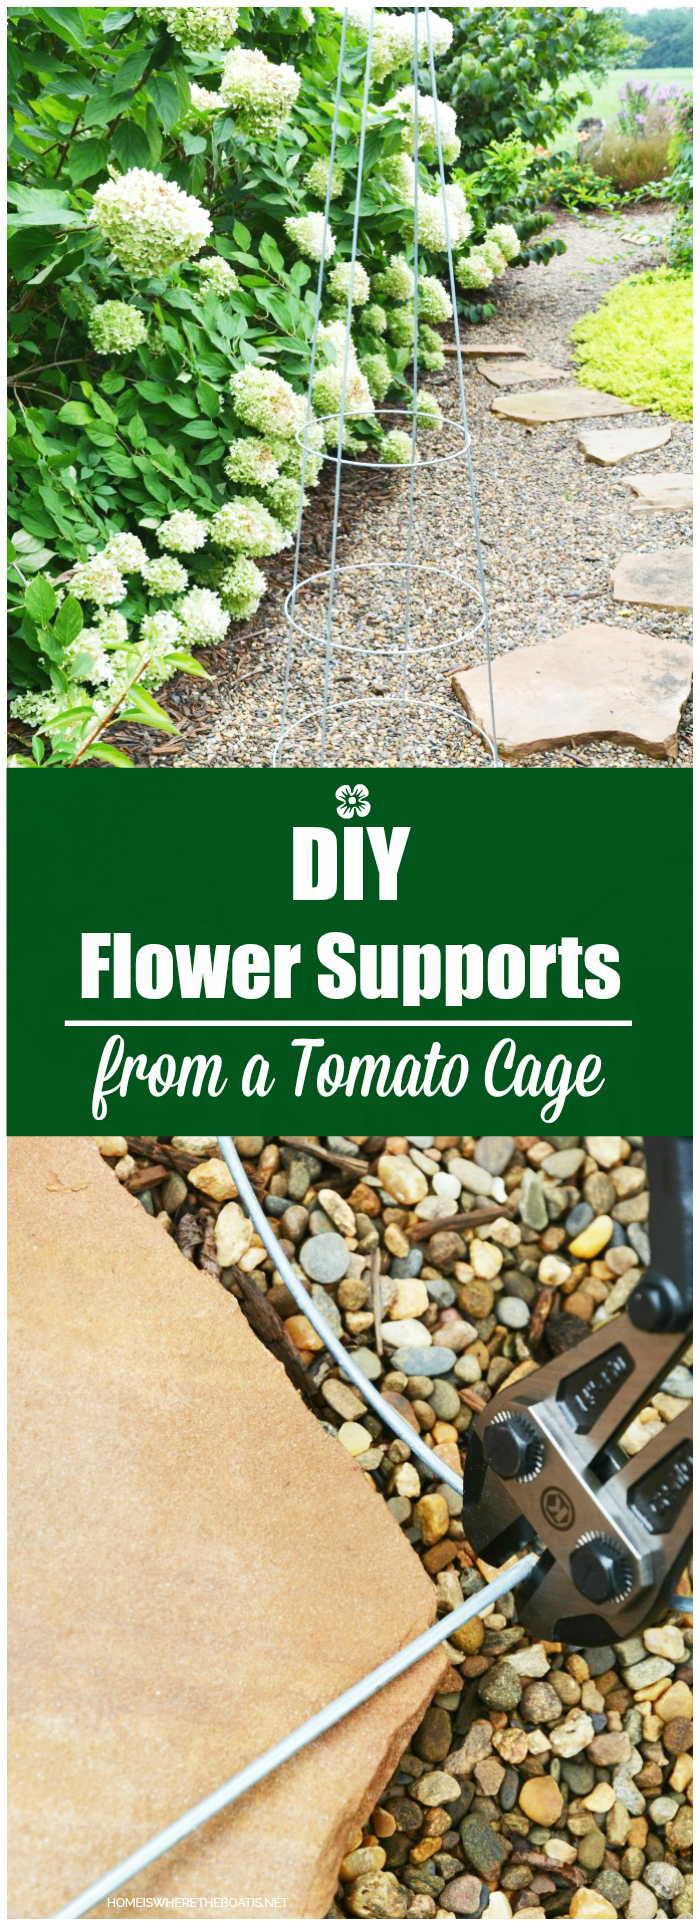 DIY Flower Supports from a Tomato Cage | ©homeiswheretheboatis.net #flowers #garden #DIY #tomatocage #hack